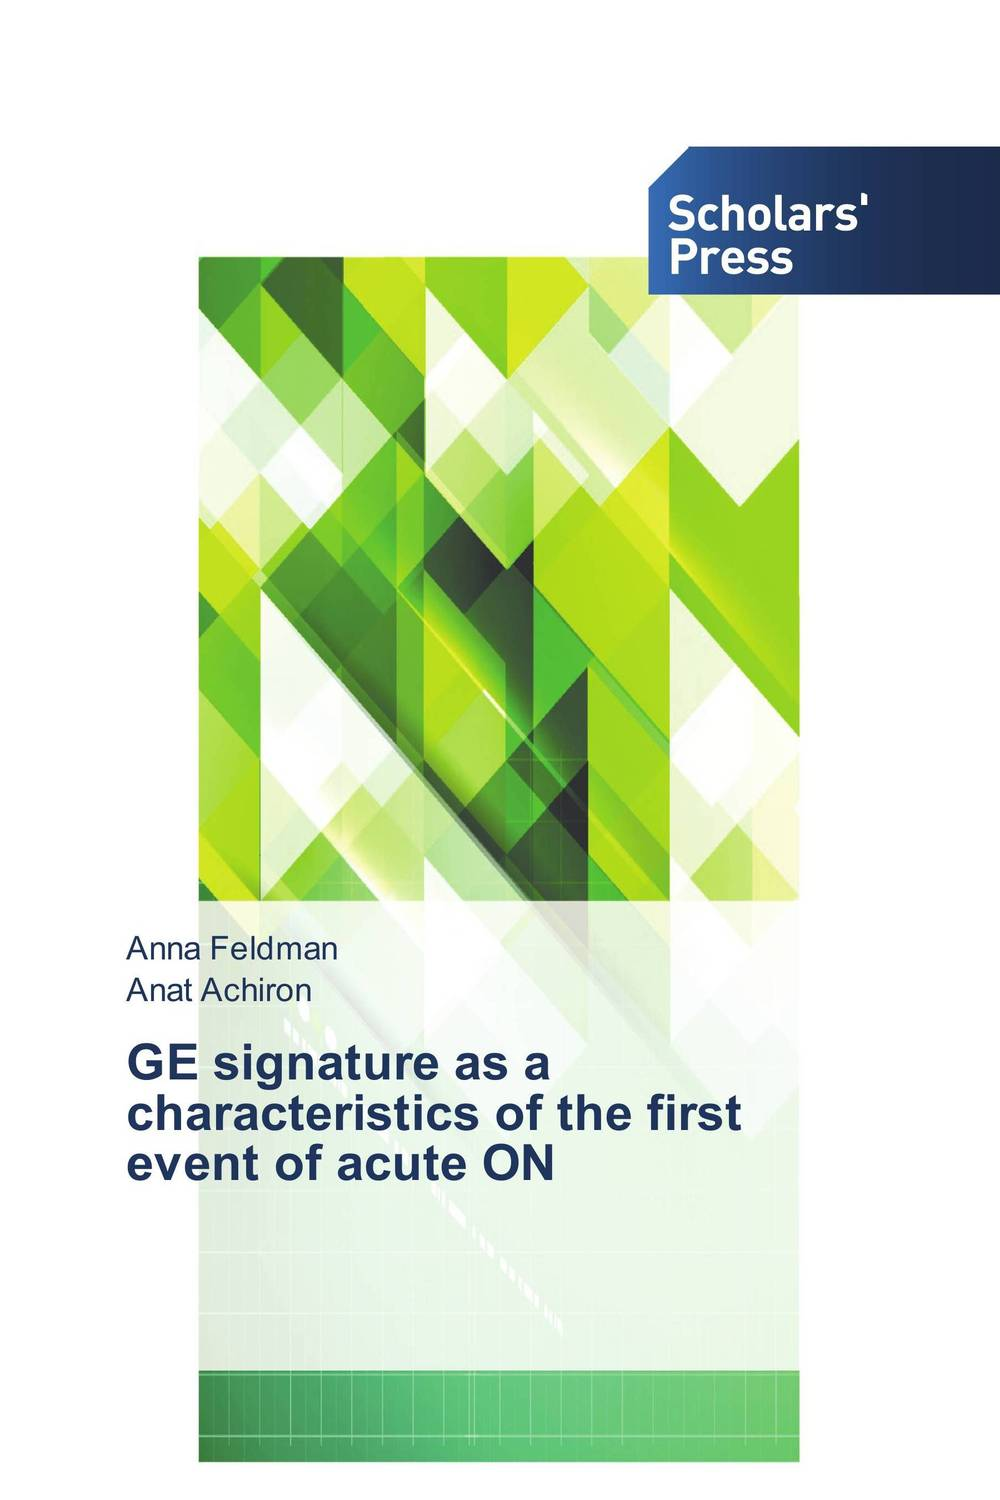 GE signature as a characteristics of the first event of acute ON